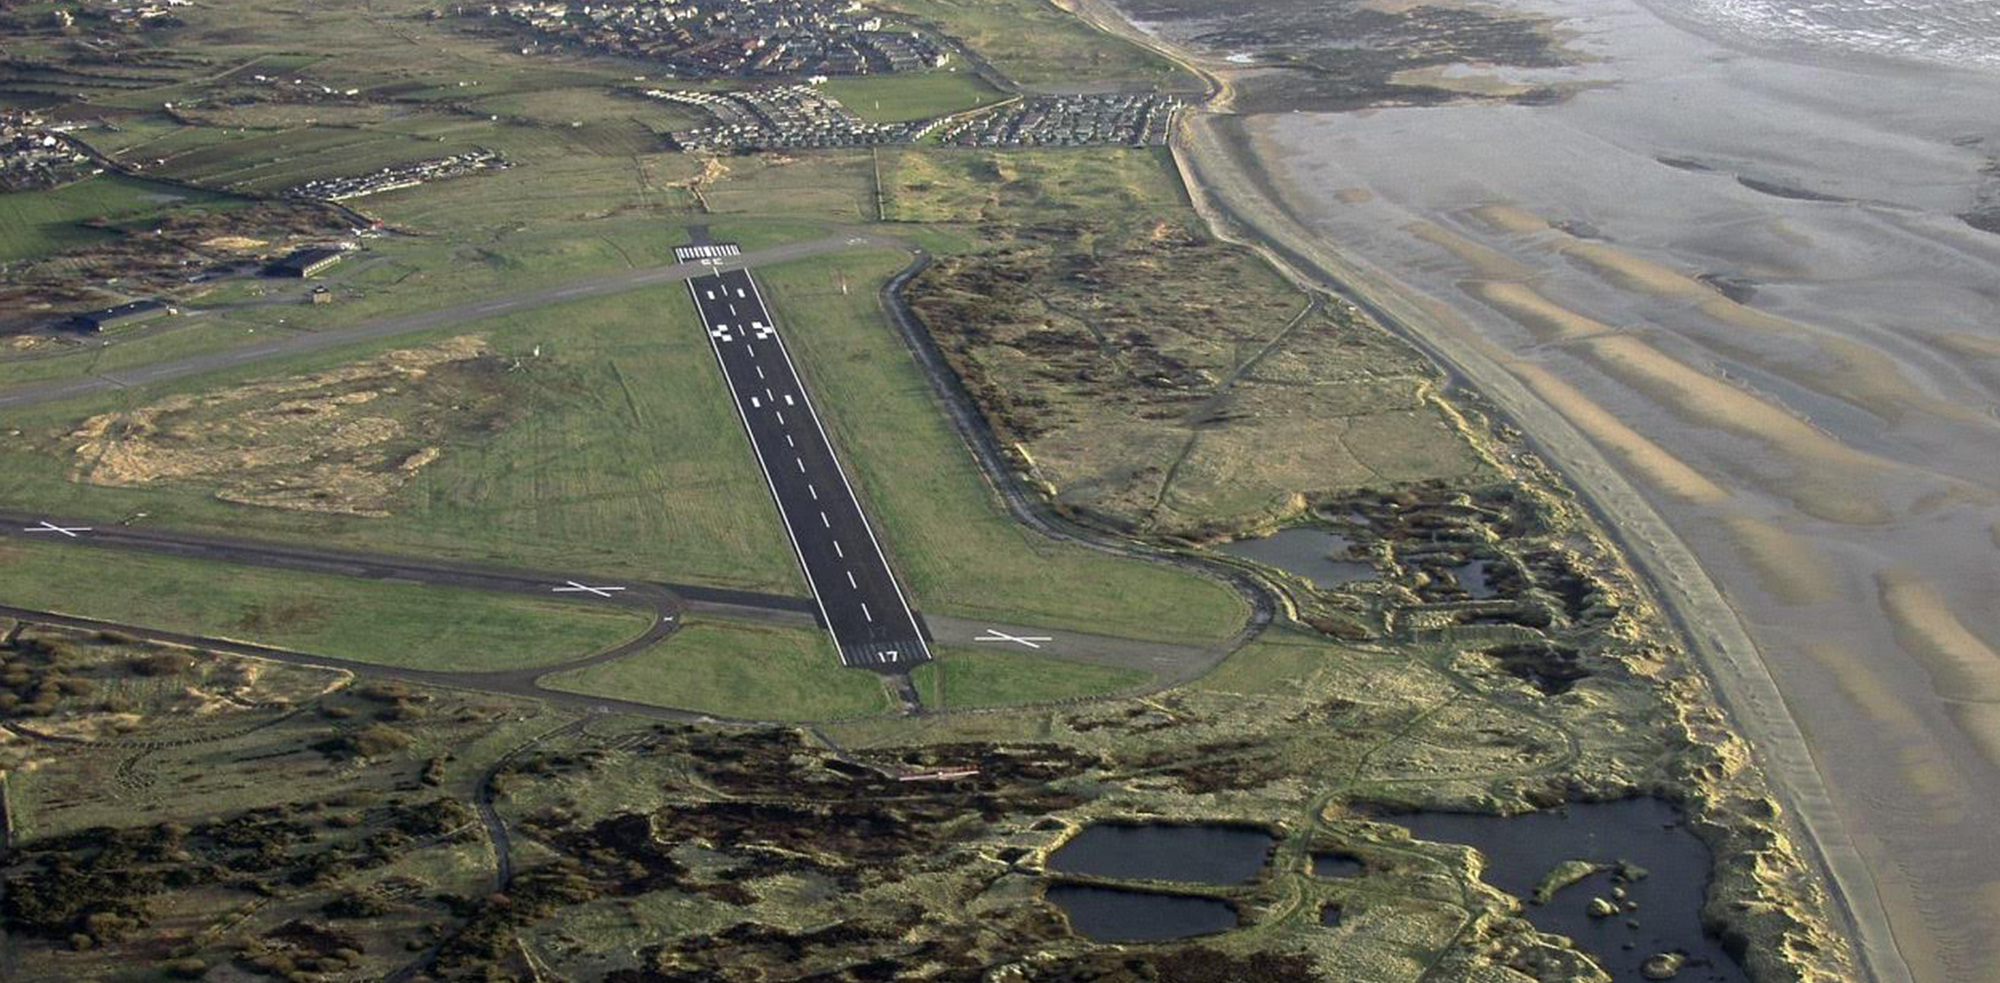 https://i2.wp.com/www.art-gene.co.uk/wp-content/uploads/2016/10/HEADER-FORT-WALNEY-Lawrence-Hill-2005-Aerial-Photos-of-the-North-Walney-National-Nature-Reserve.jpg?fit=2000%2C983